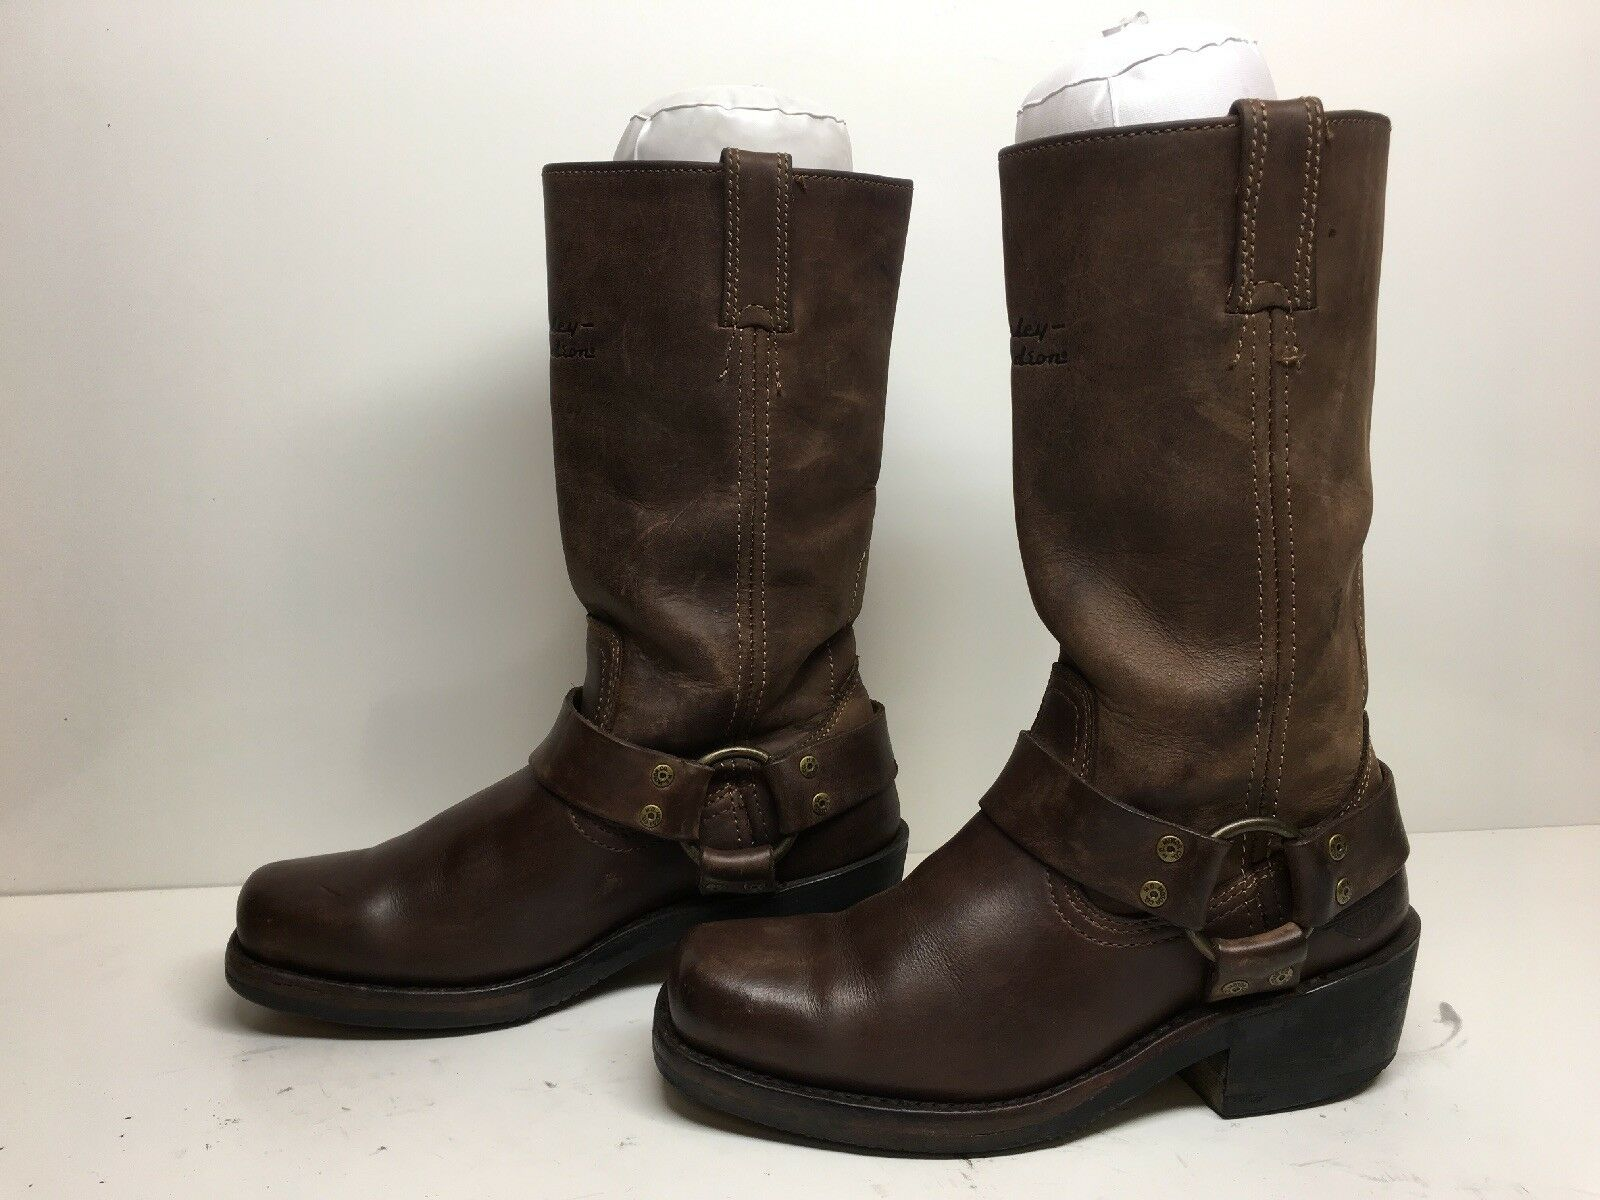 WOMENS HARLEY DAVIDSON SQUARE TOE HARNESS MOTORCYCLE LEATHER BROWN BOOTS SIZE 6